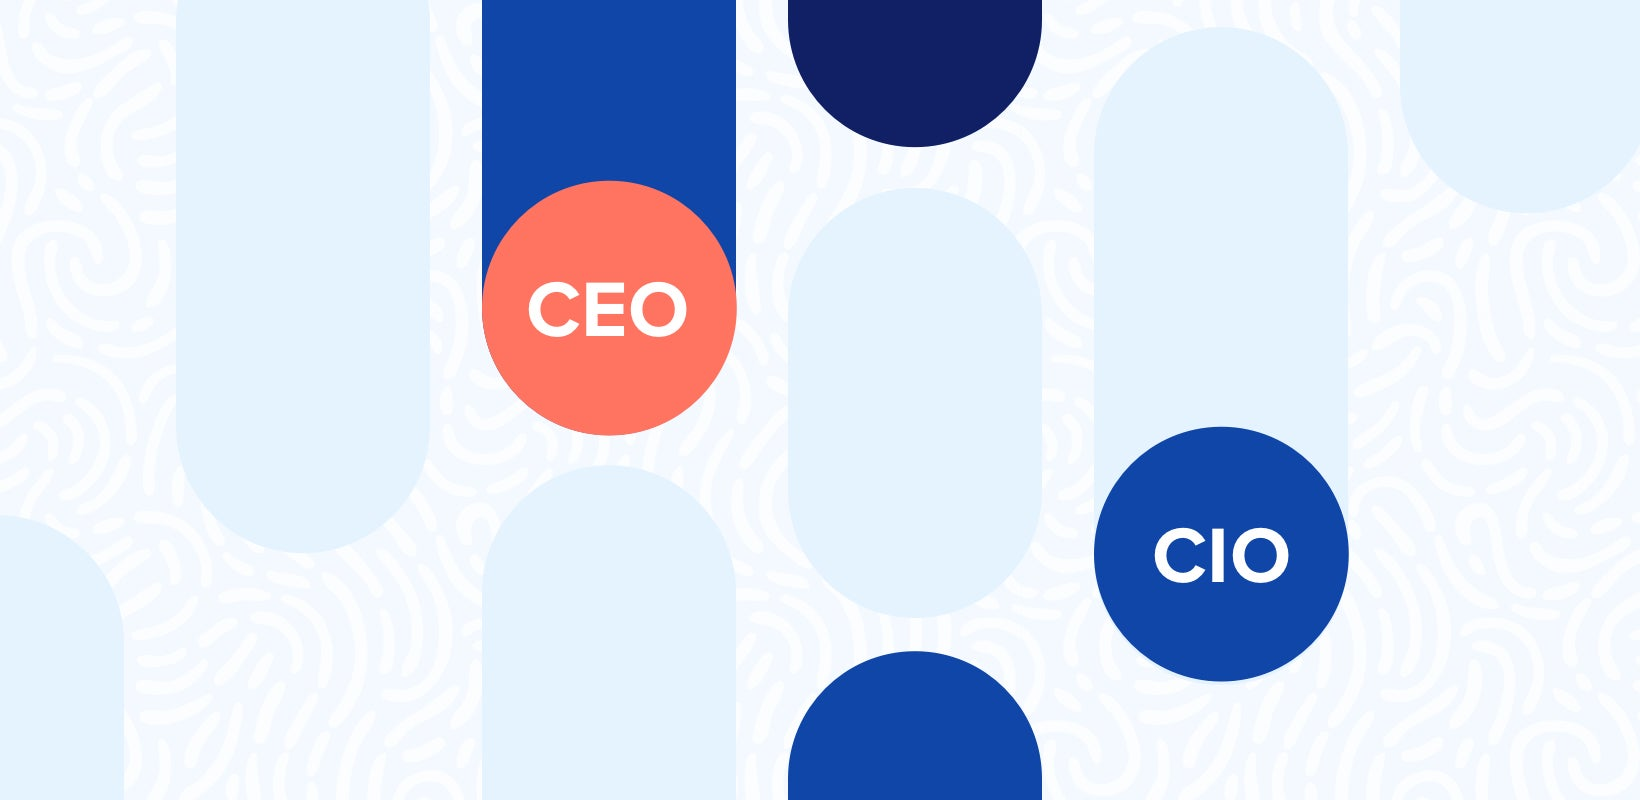 Why 'Chief Information Officer' Will Soon Be Renamed 'Chief Experience Officer'